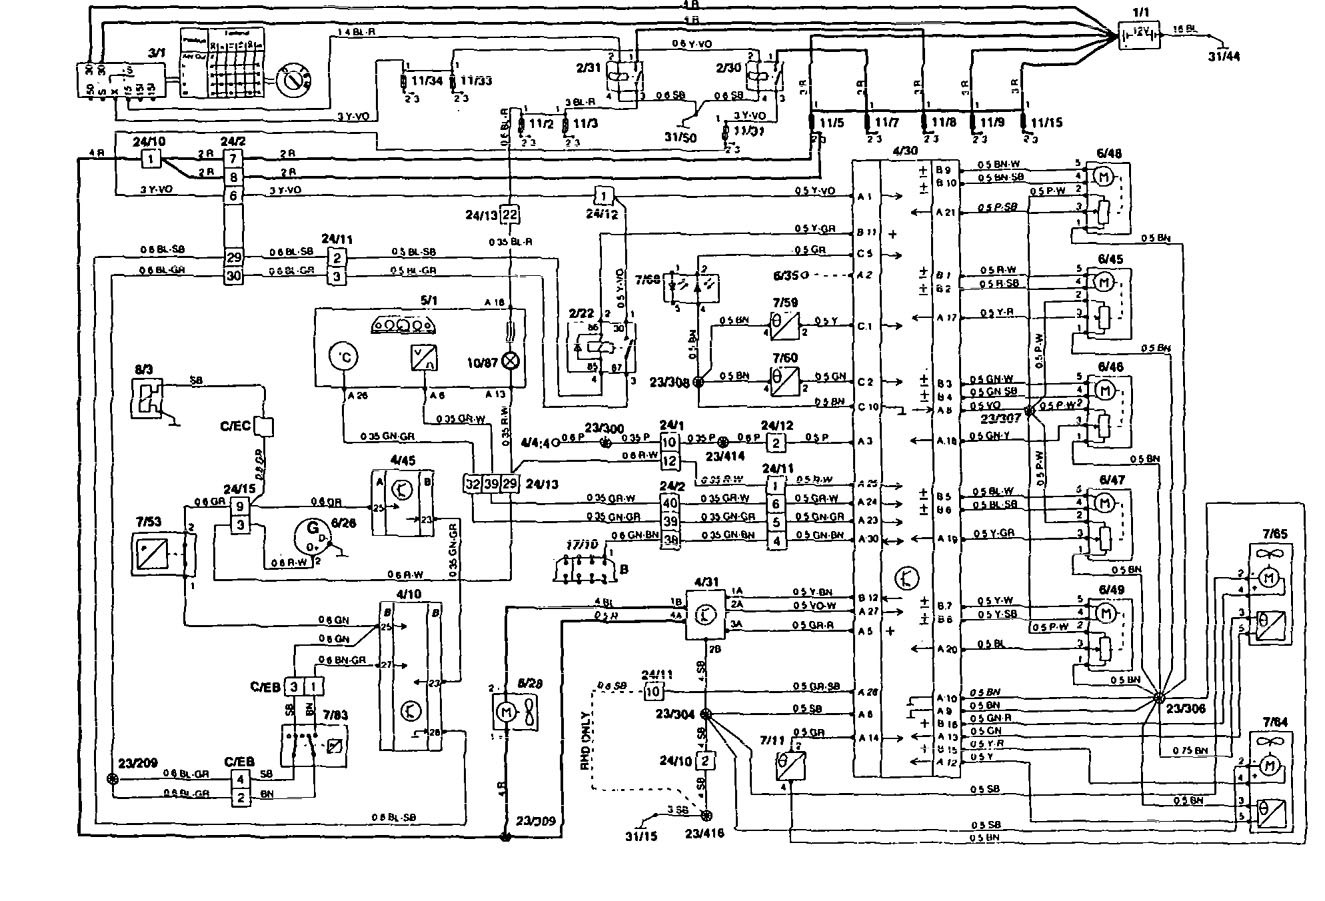 volvo 850 air conditioning wiring diagram